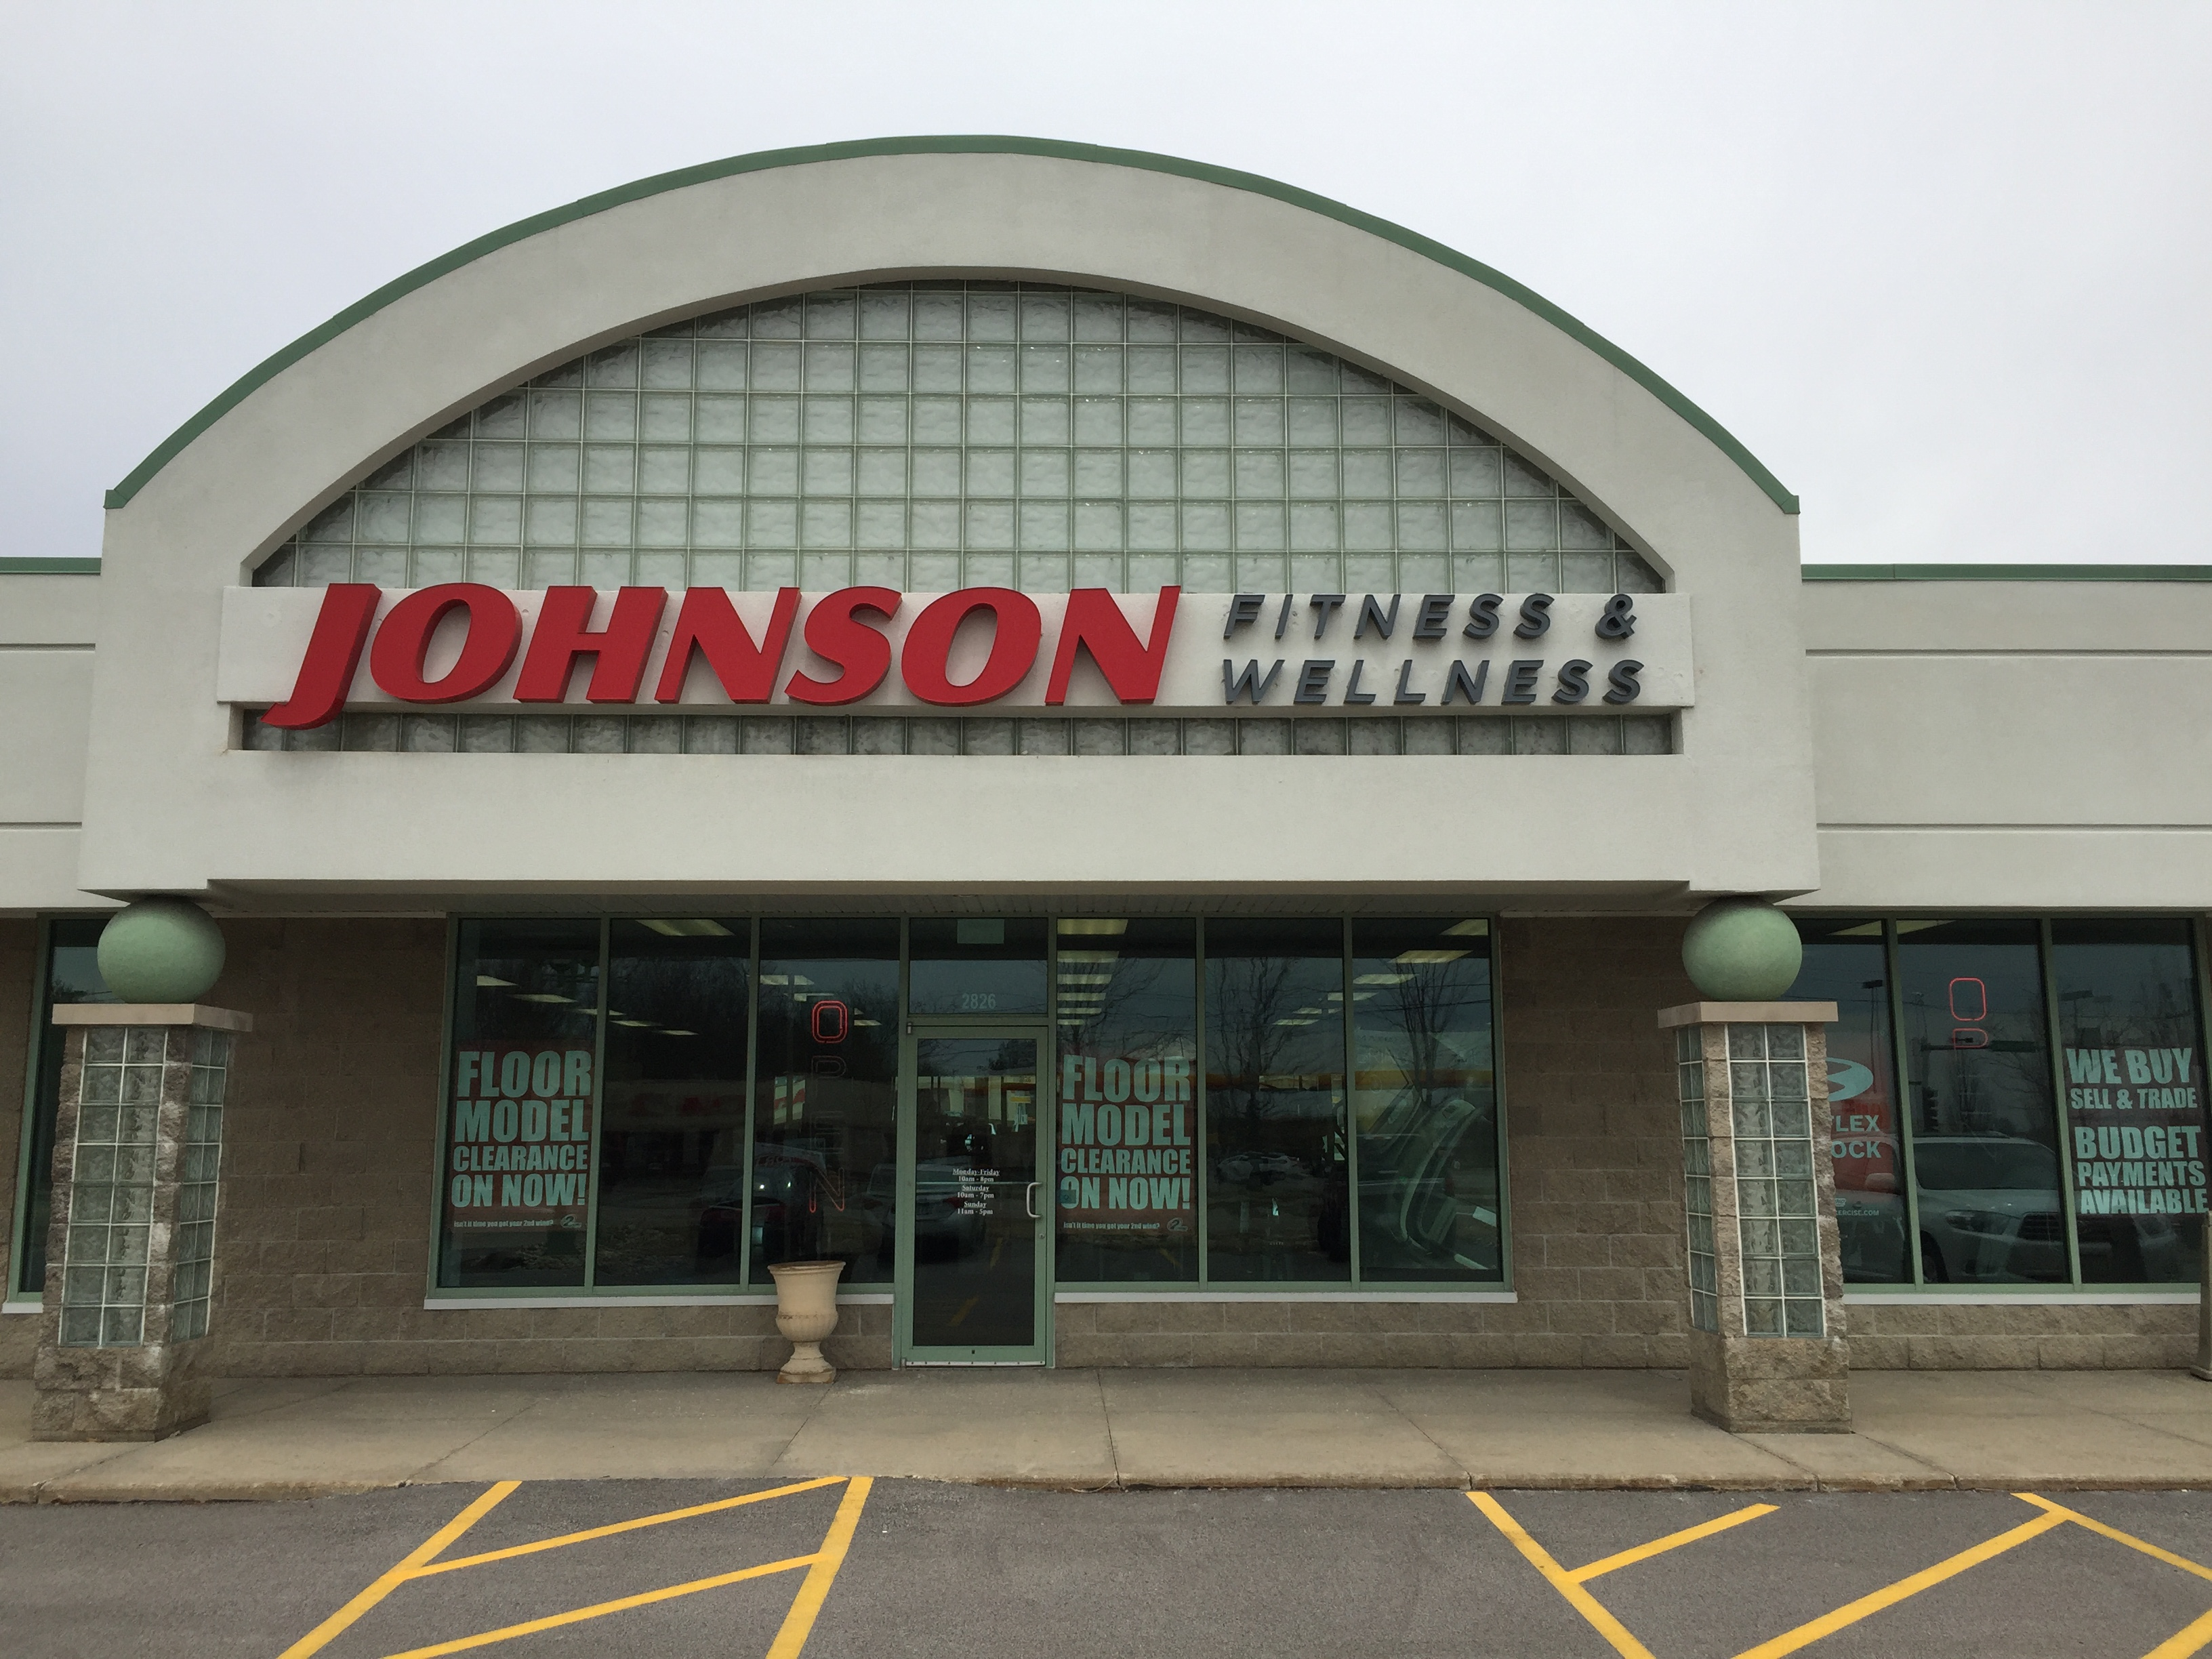 Johnson Fitness & Wellness - Davenport, IA